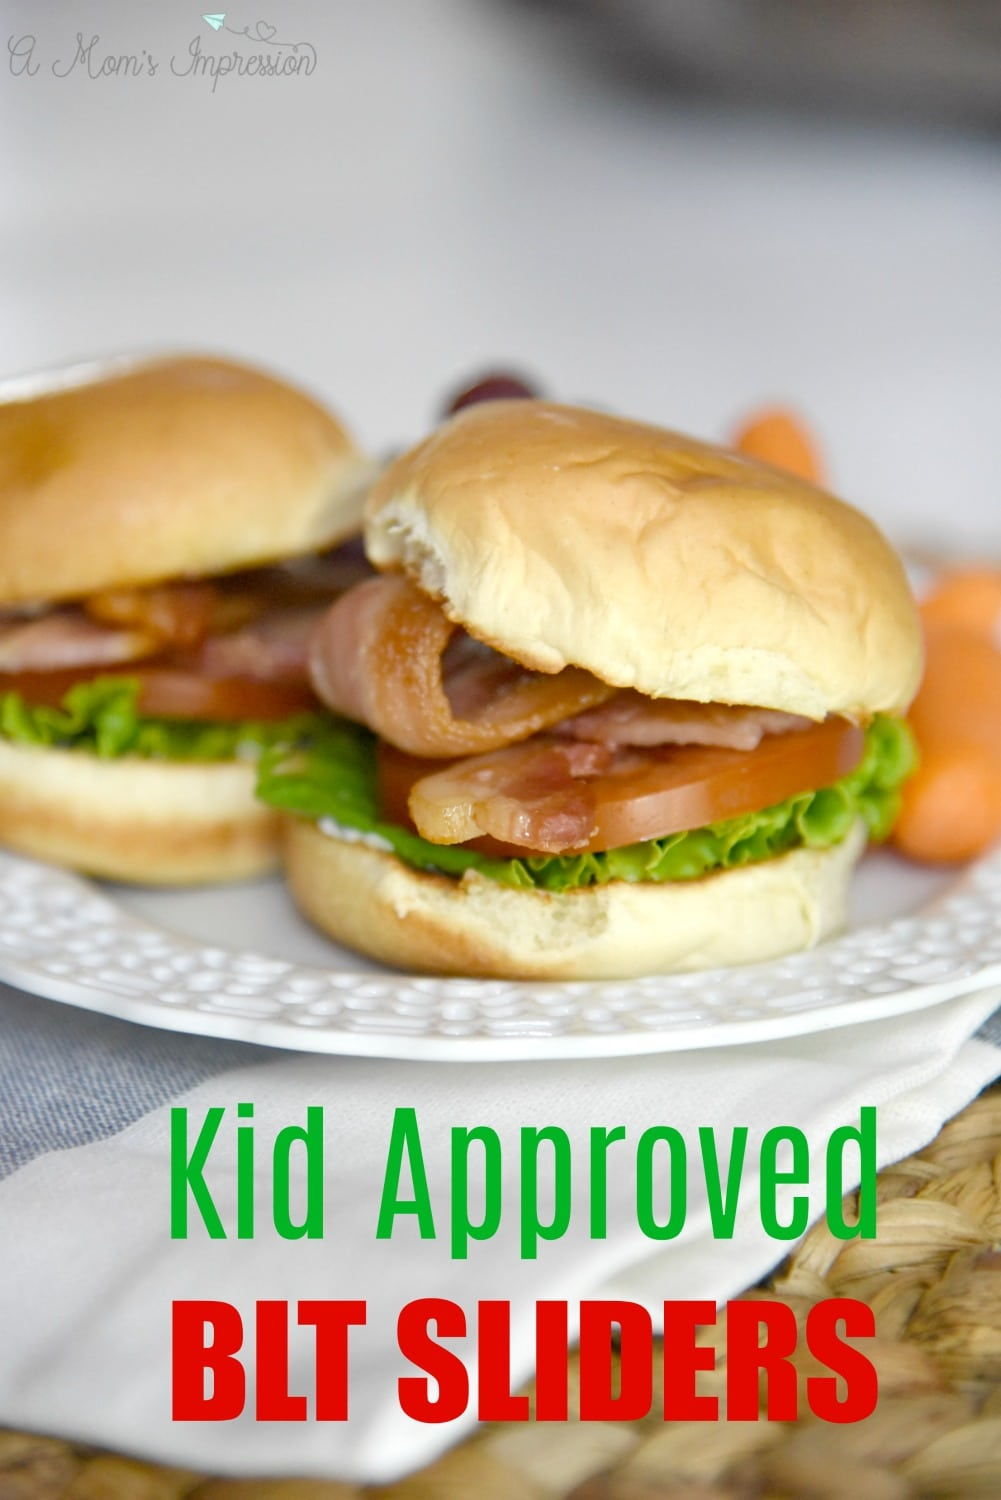 Kid approved BLT Sliders